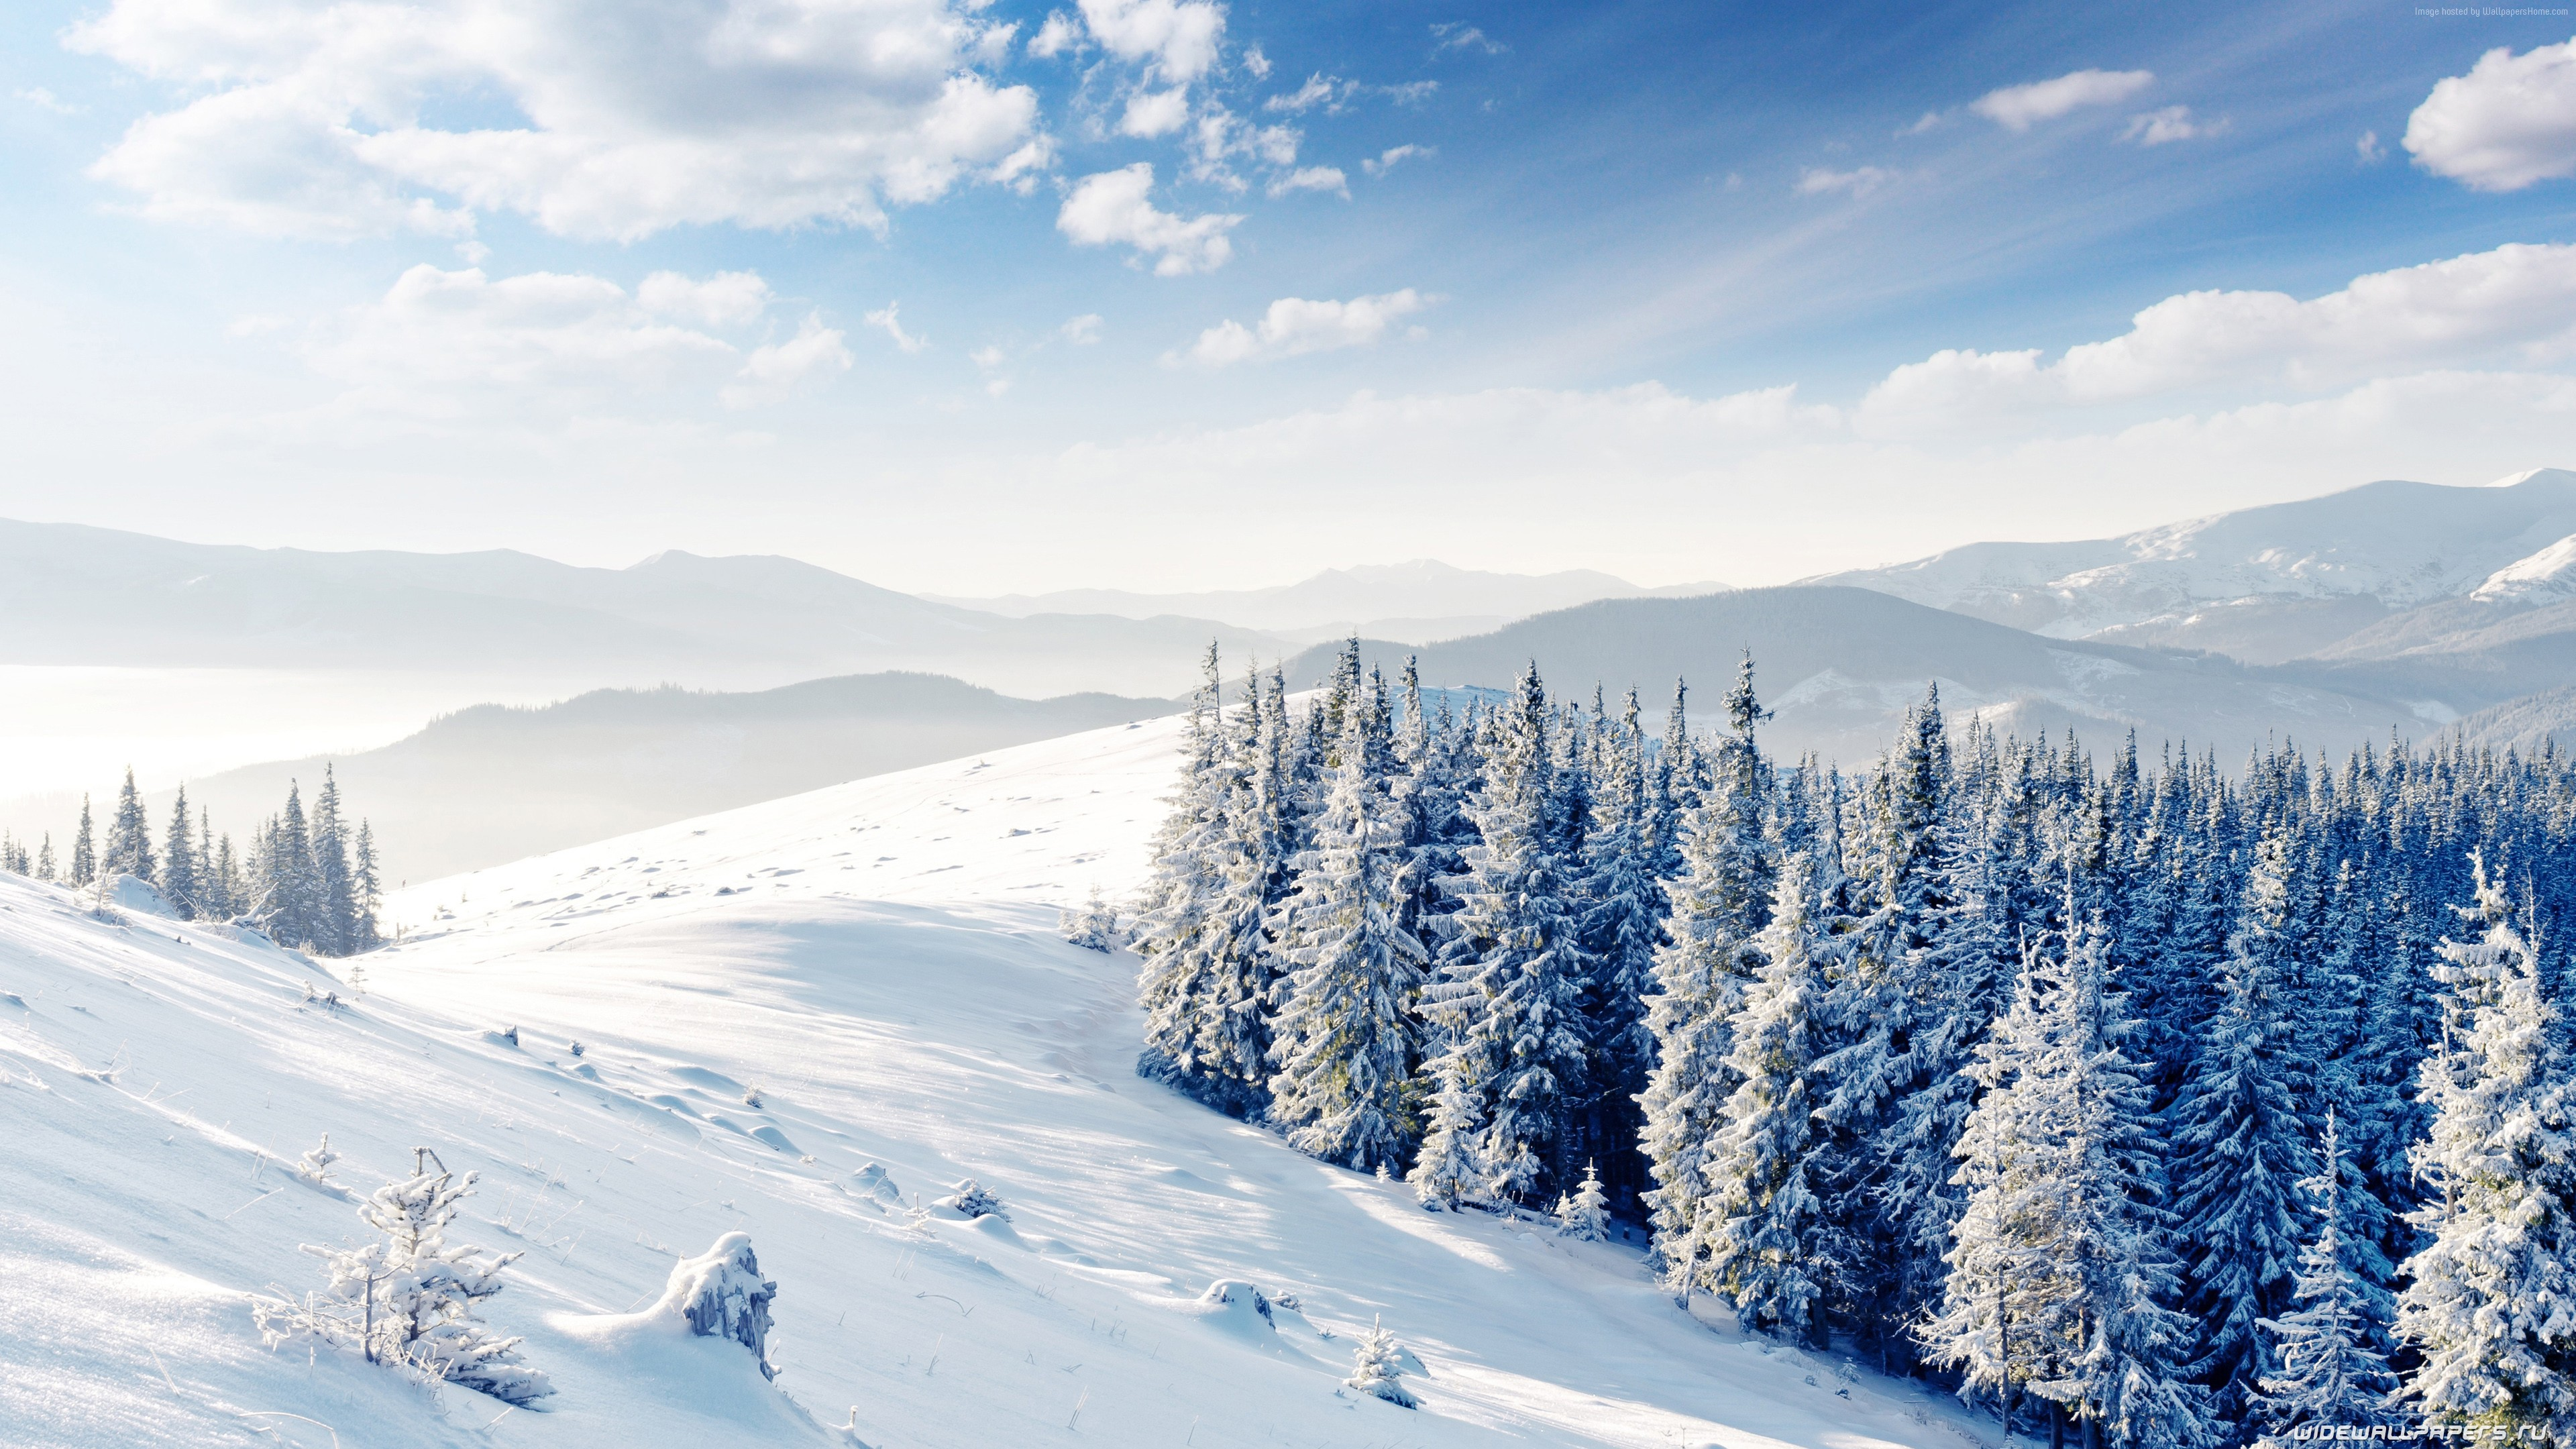 Wallpaper mountains, forest, trees, snow, winter, 4k, Nature